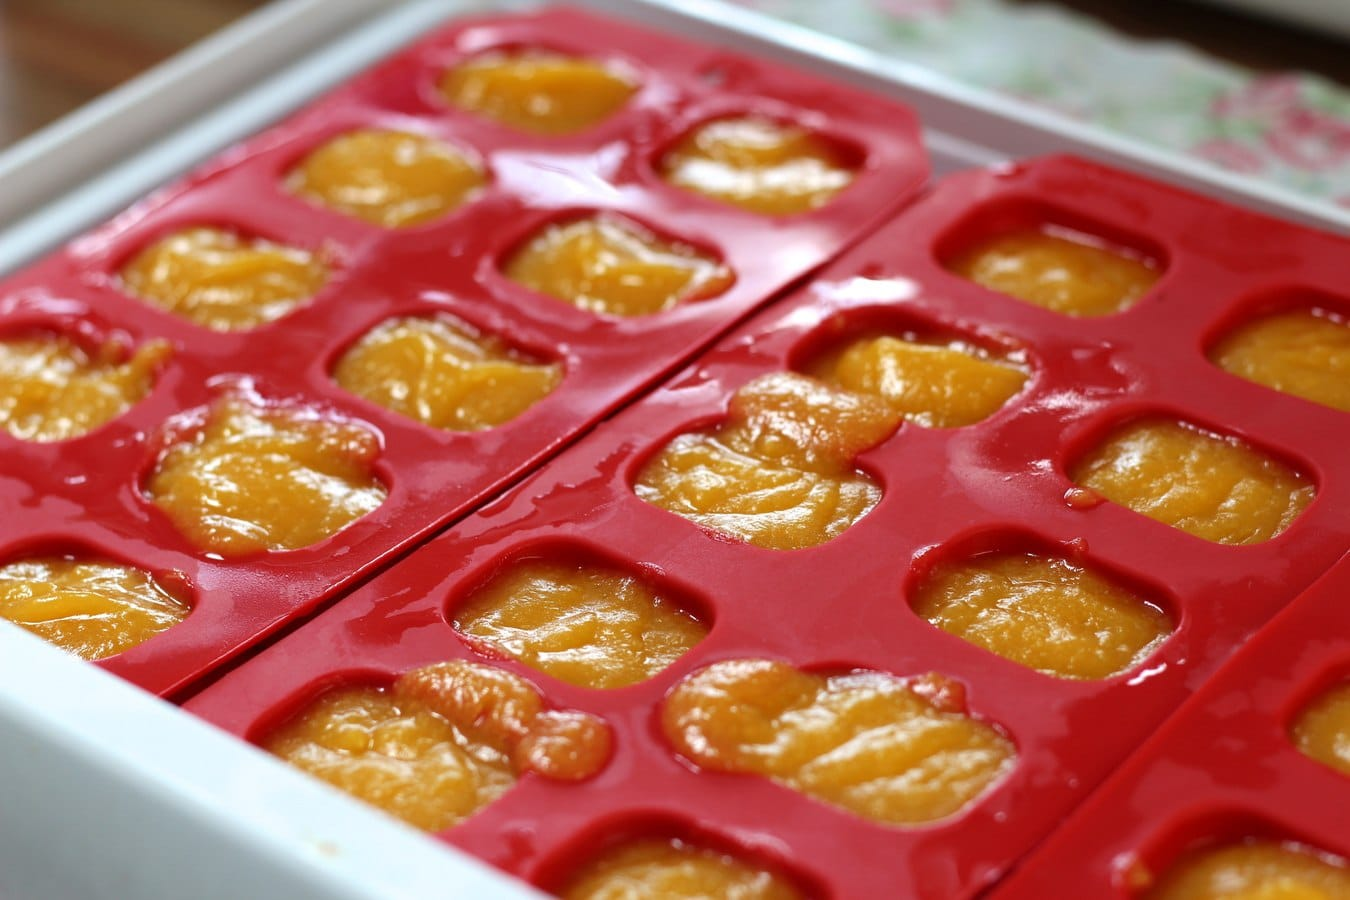 Baby weaning silicone ice cube trays